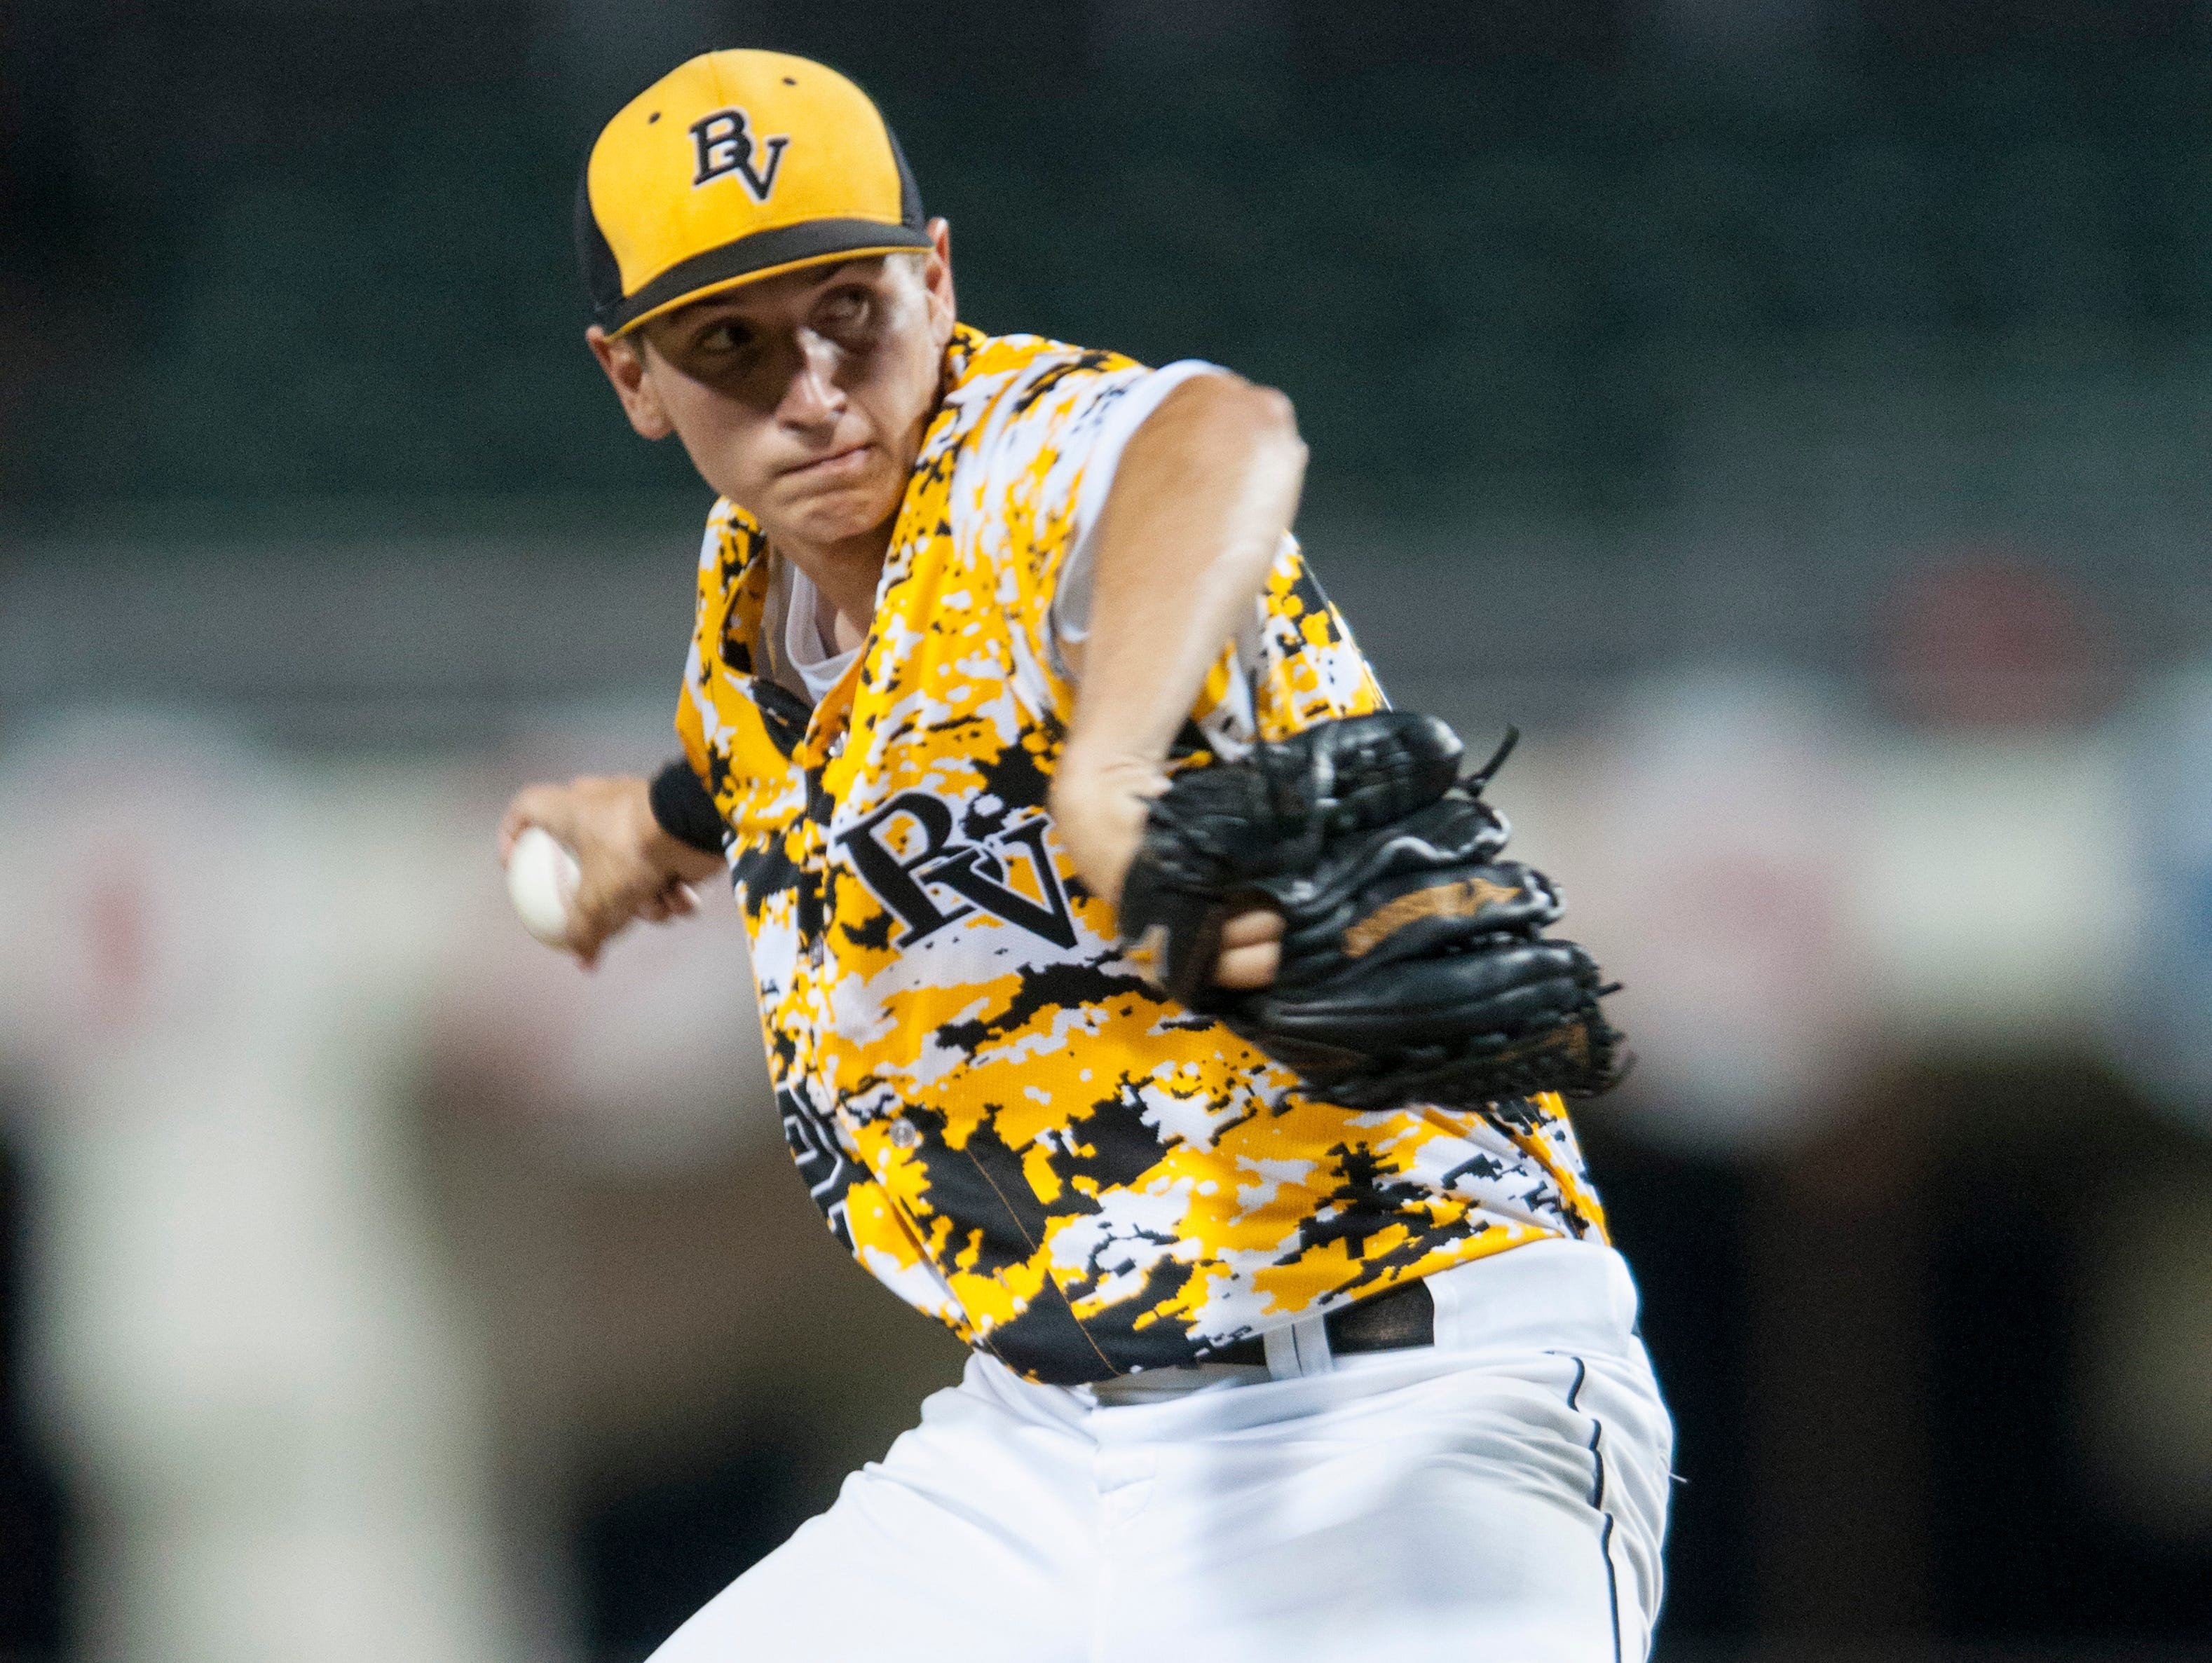 Thaddeus Ward pitches in the first inning for Bishop Verot in the Class 4A State Baseball final against Jacksonville Trinity Christian on Tuesday, May 19, 2015, at JetBlue Park in south Fort Myers.